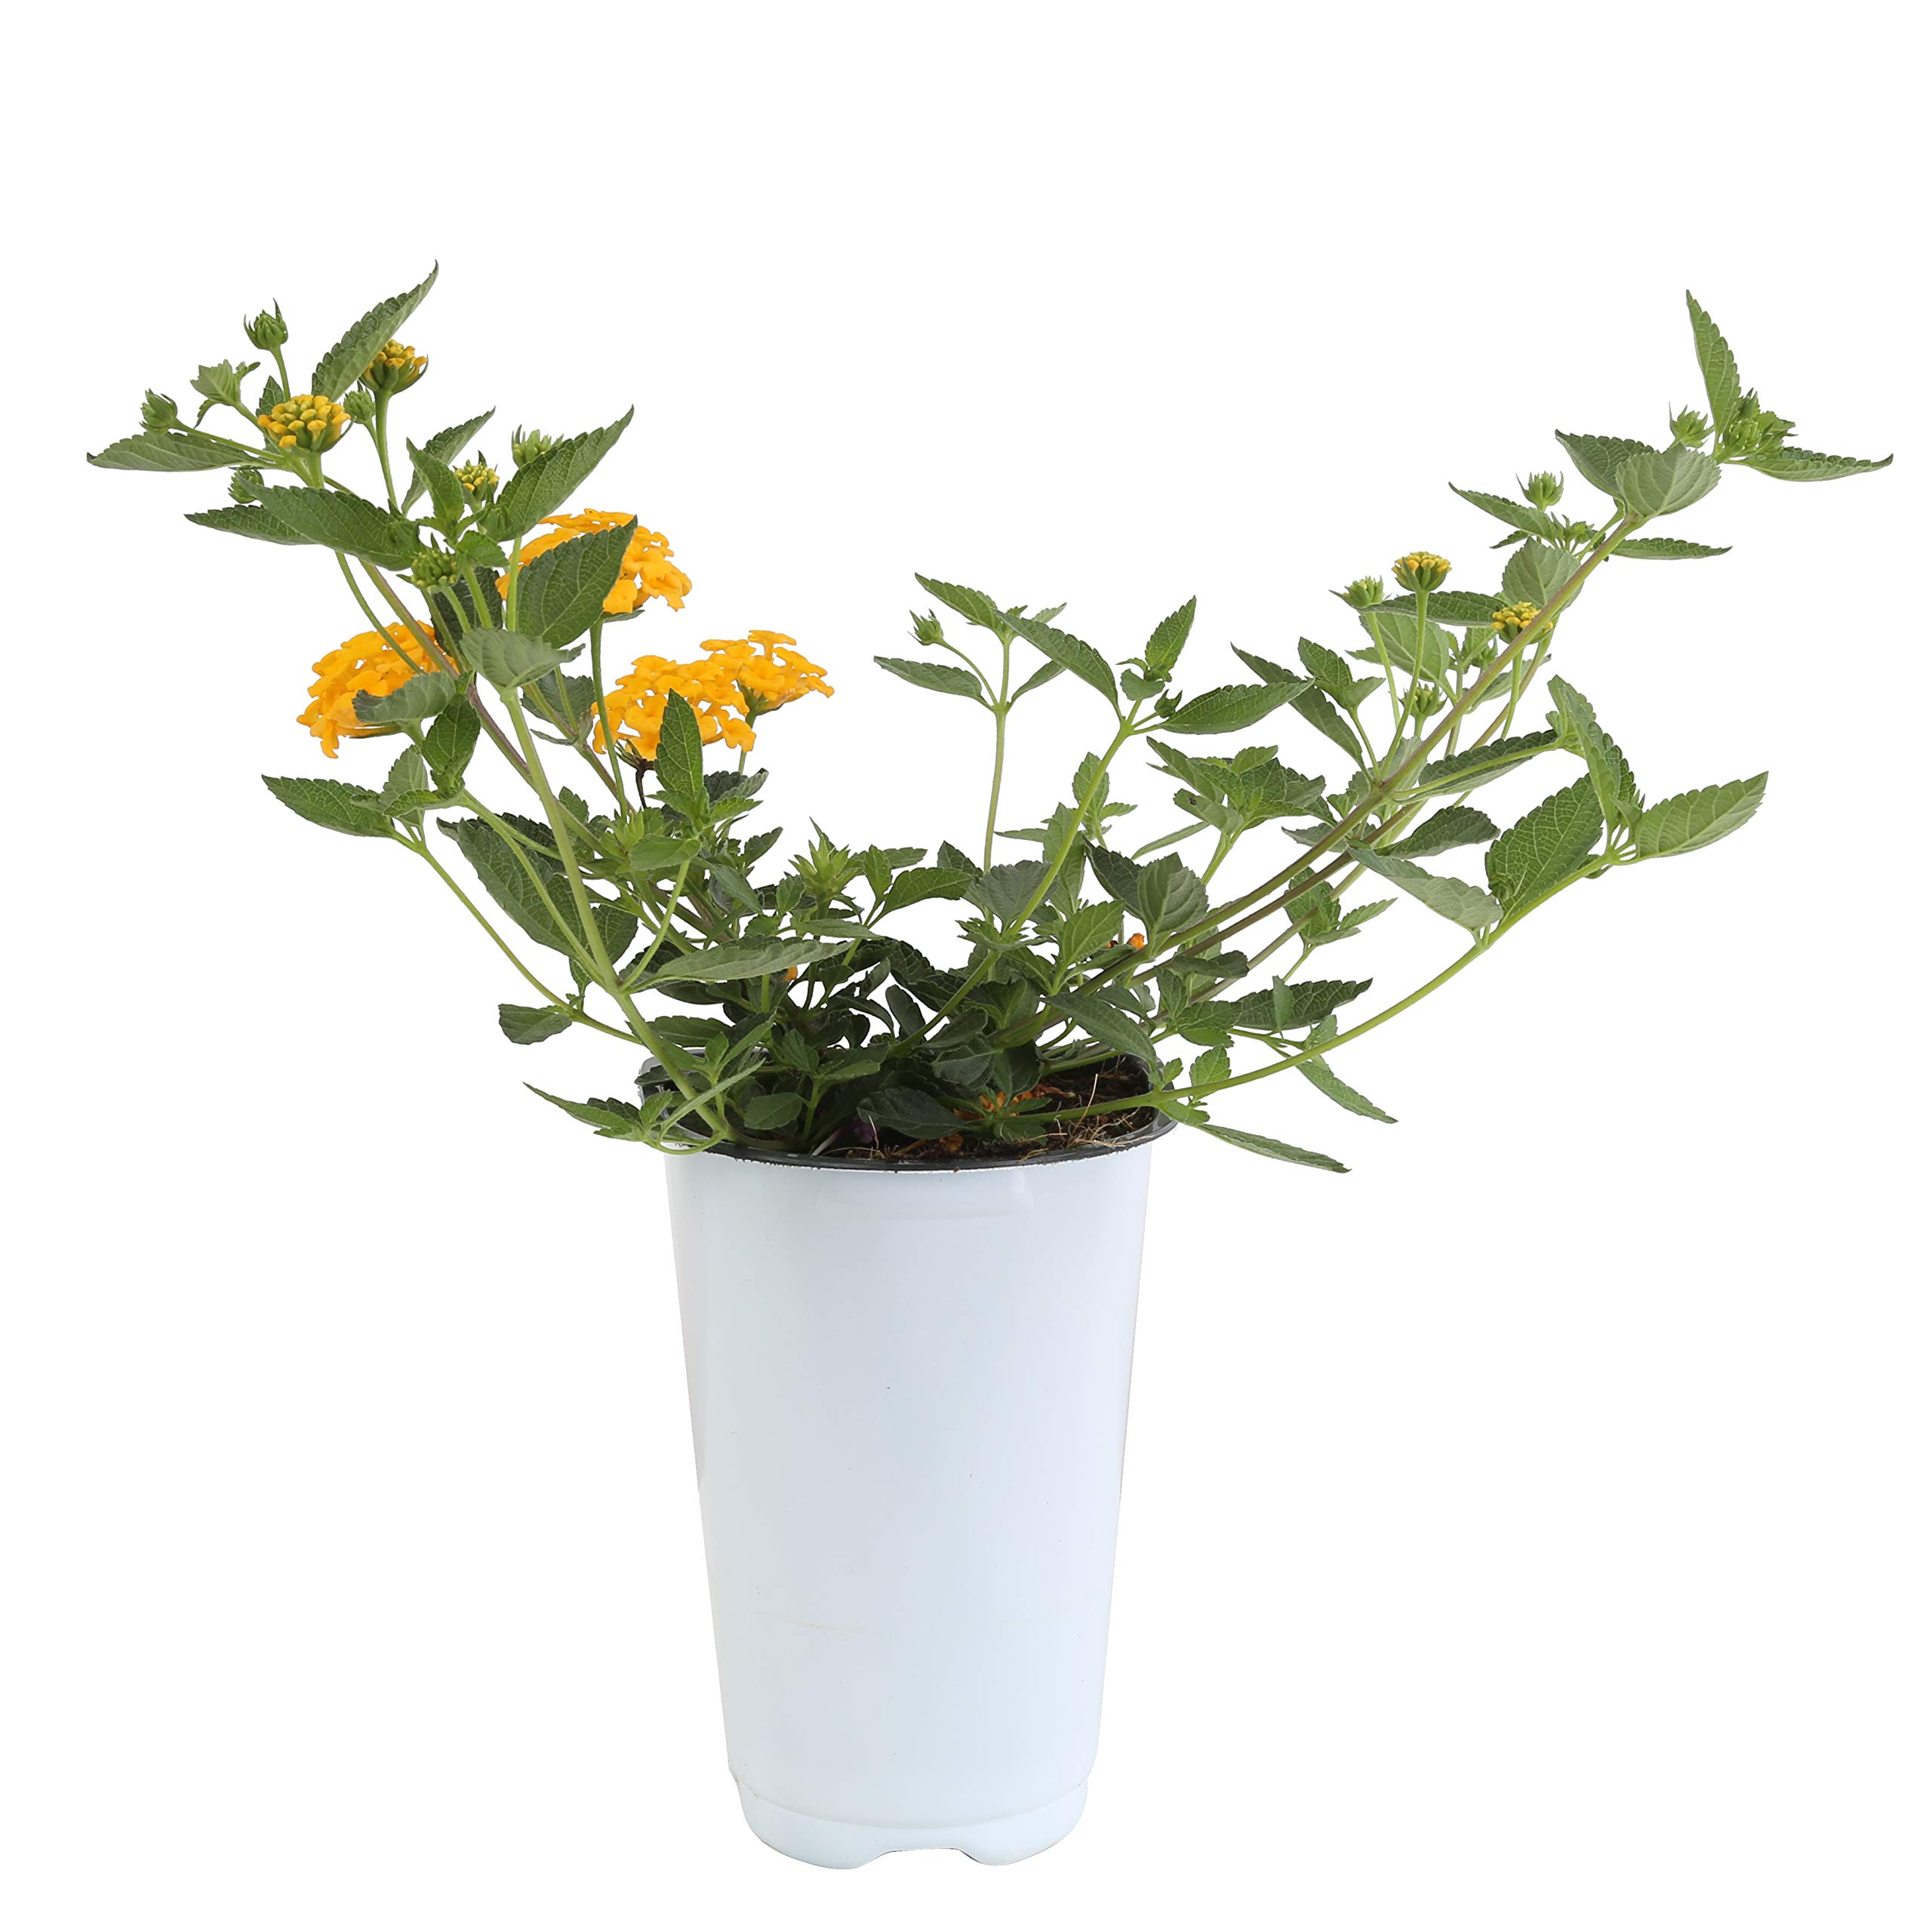 Costa Farms Live Premium Lantana Plant 1.00 qt Grower Pot, 8-Pack Yellow by Costa Farms (Image #2)